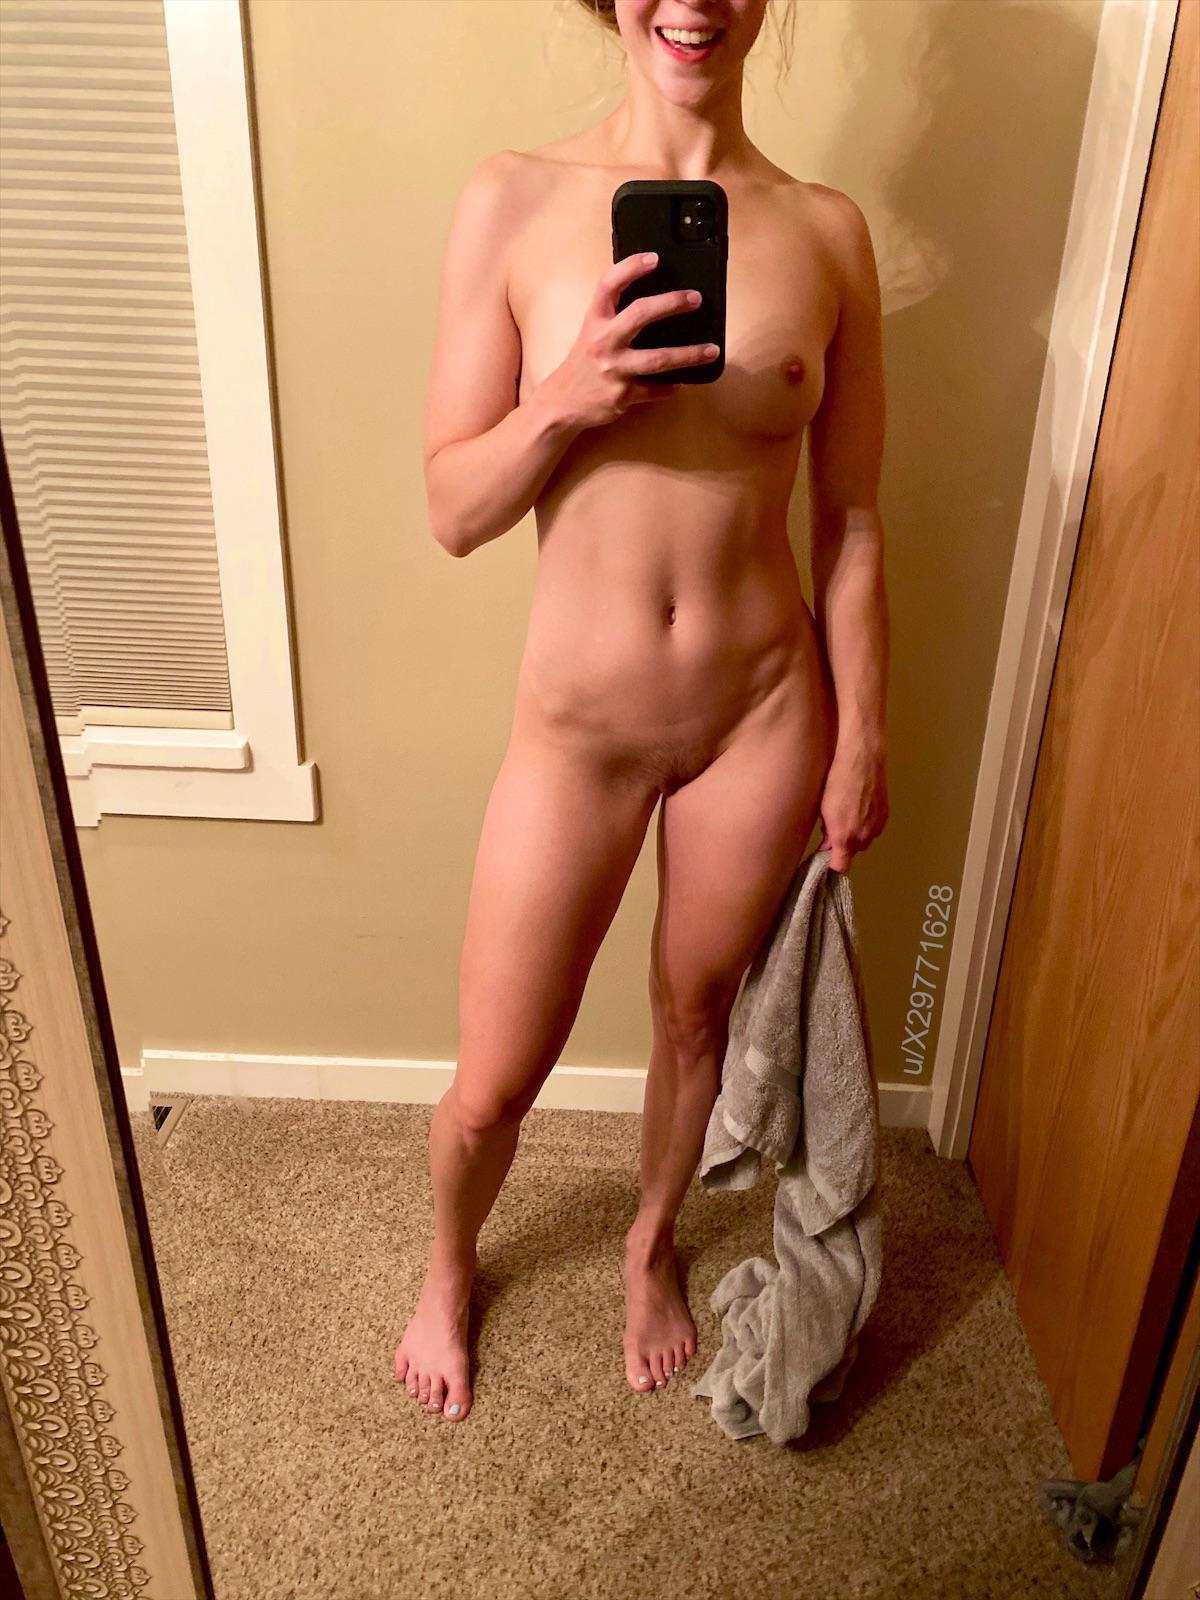 Fresh Out Of The Shower?